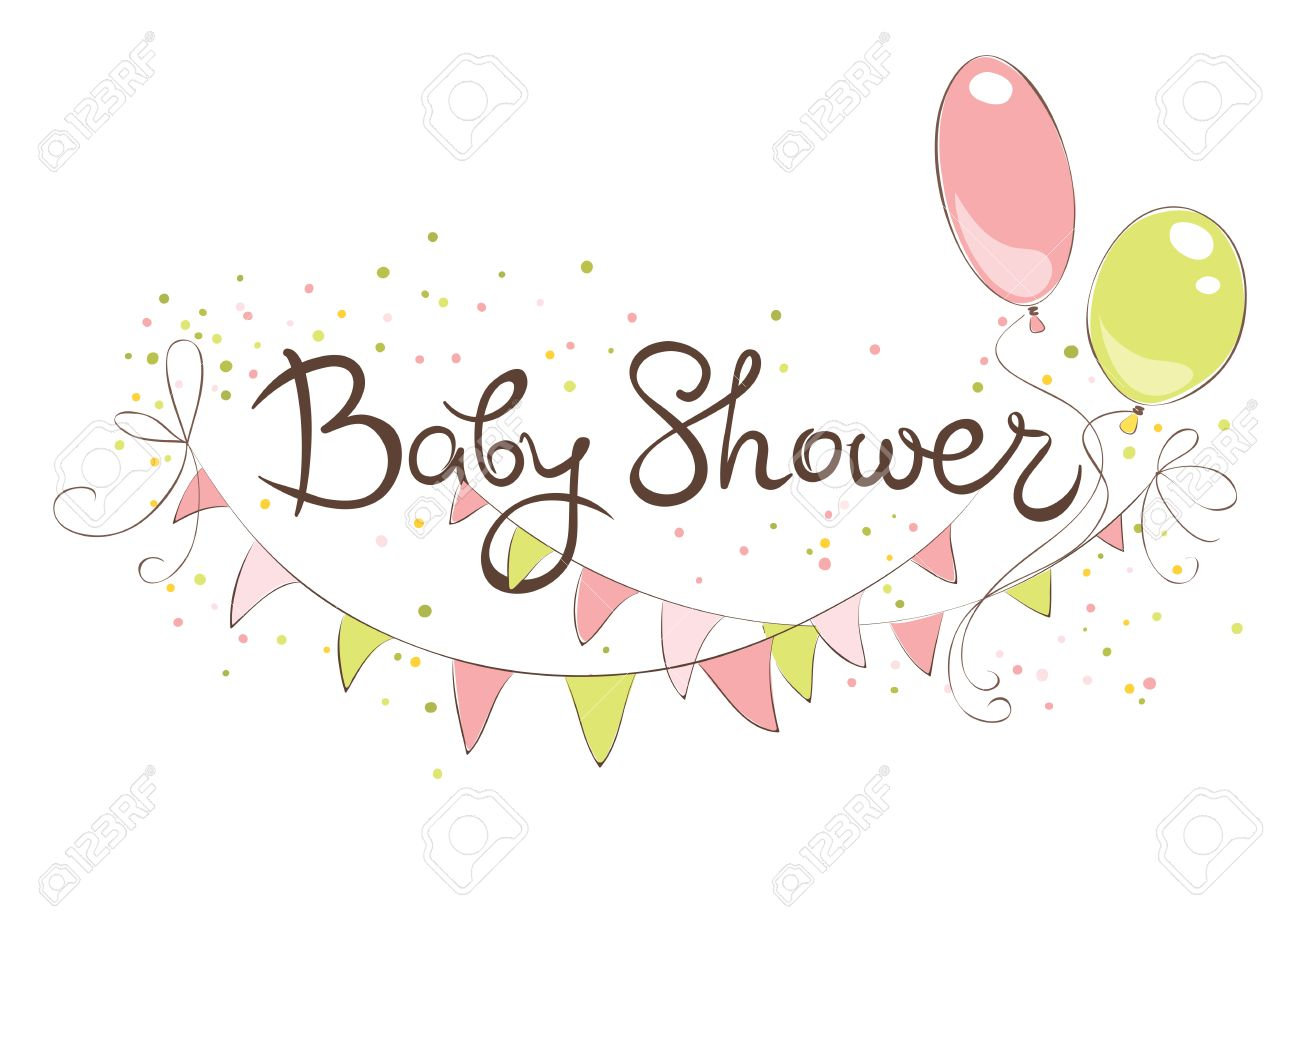 hight resolution of baby shower banner for girl funny vector illustration with balloons and flags stock vector